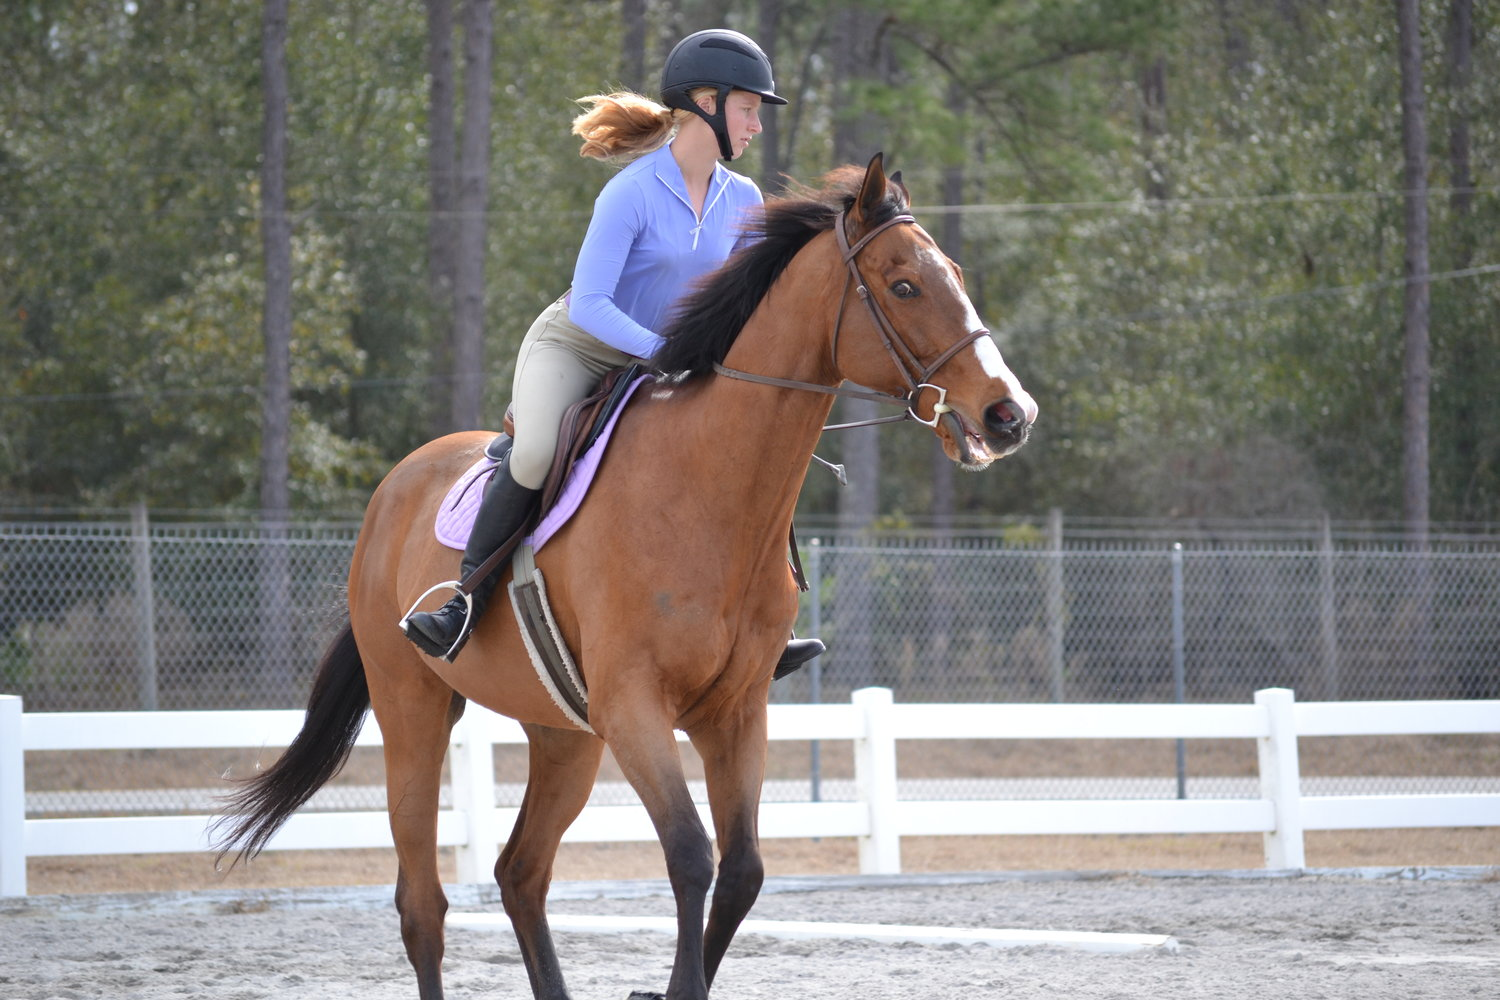 Here, rider Sarah Grimm dons a helmet in the 4-H Winter Wonderland of Horses event, where she is stop the horse Sea Cloud, also known as Cloudy.